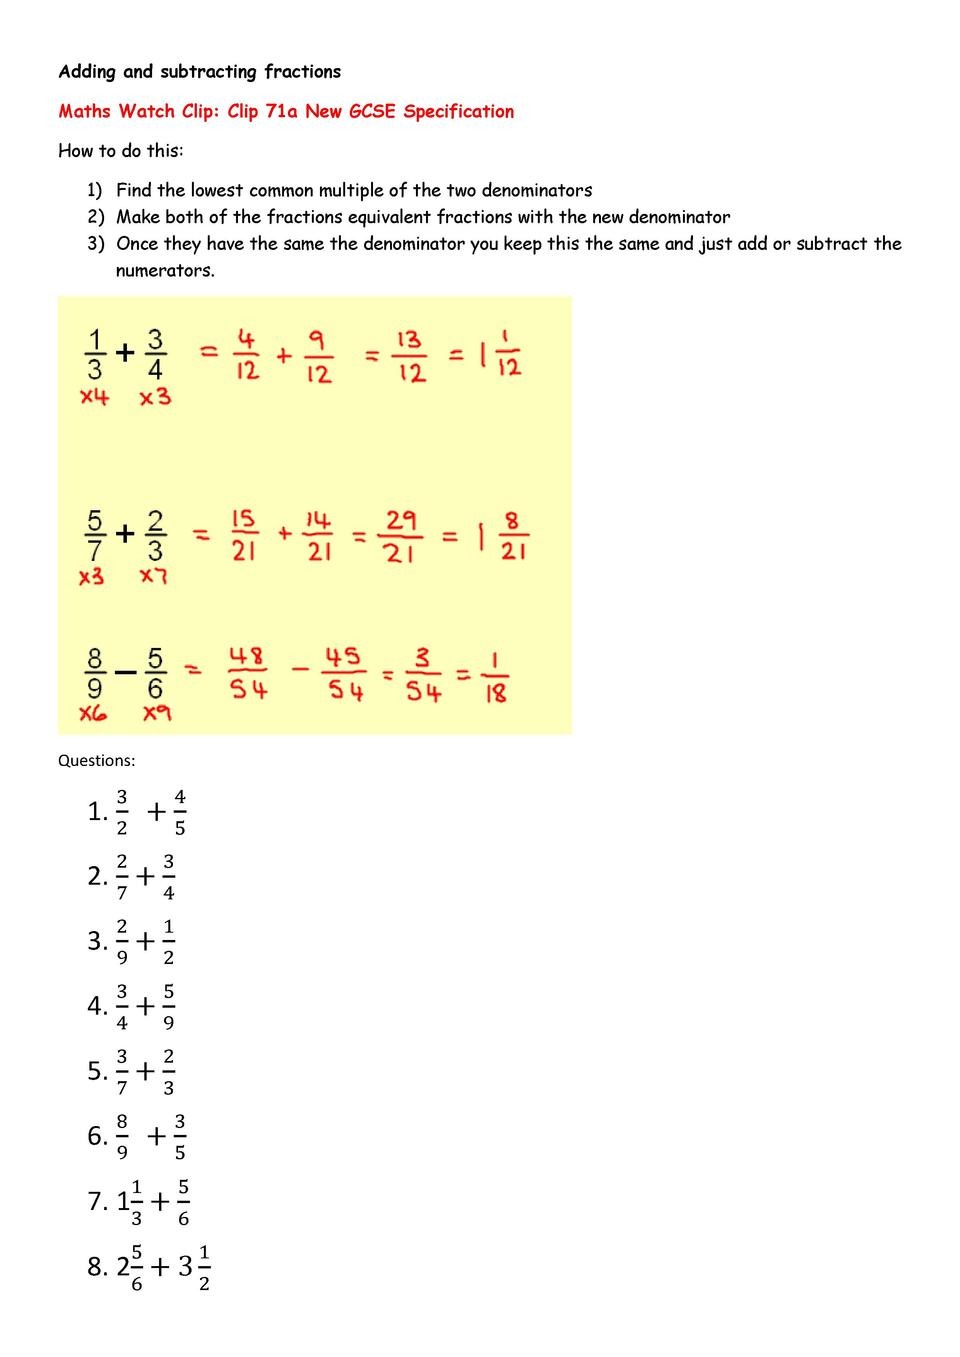 Adding And Subtracting Fractions Maths Watch Clip Clip 71a New Gcse  Specification How To Do This